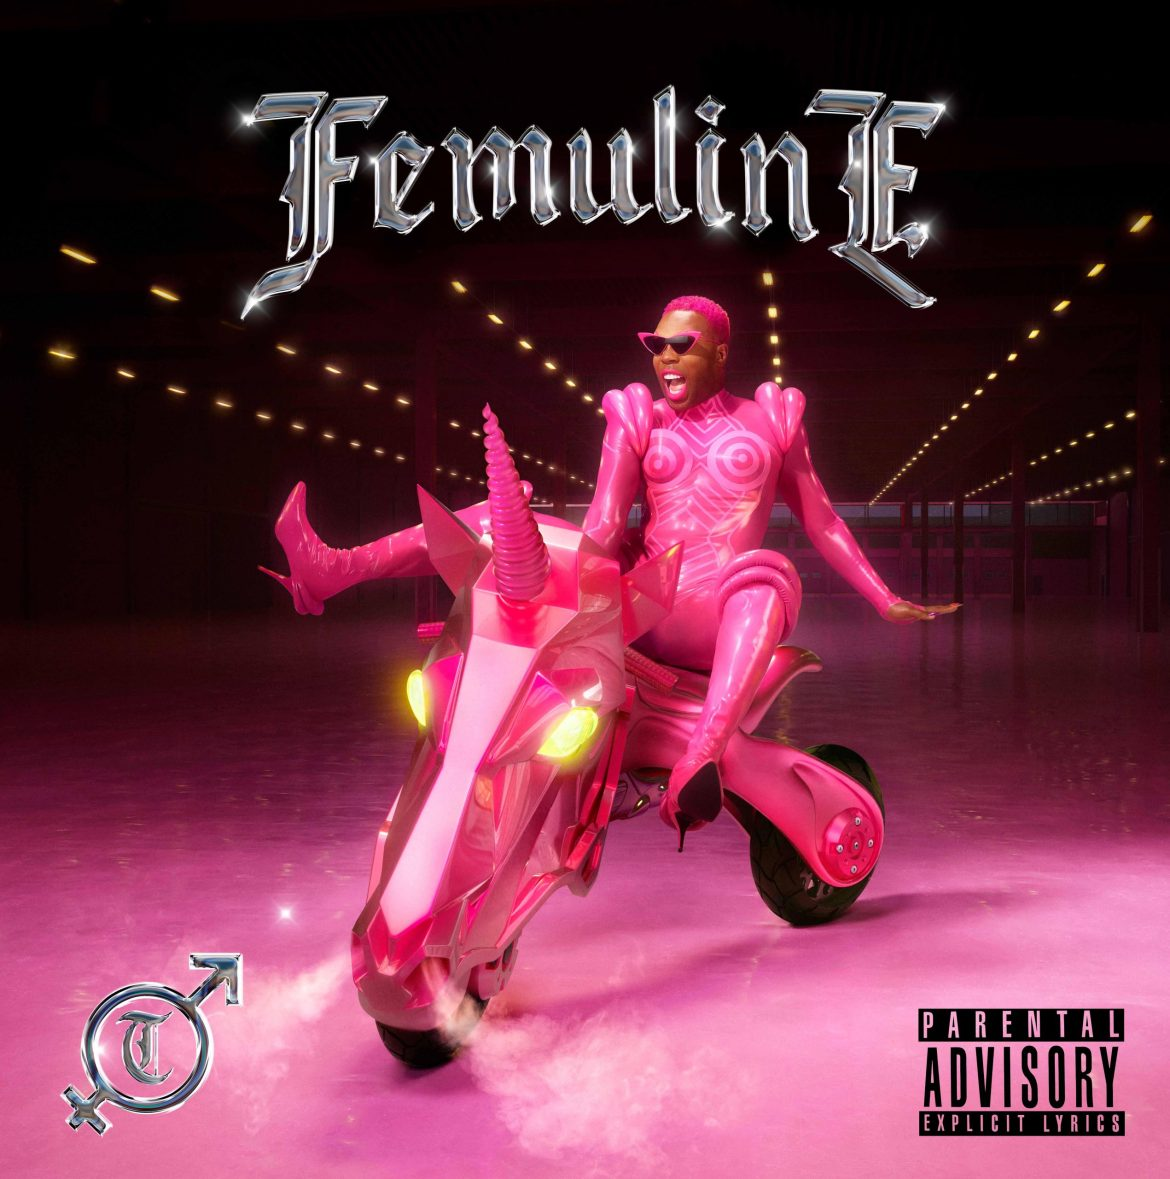 TODRICK HALL'S BOLD NEW ALBUM FEMULINE OUT NOW AVAILABLE